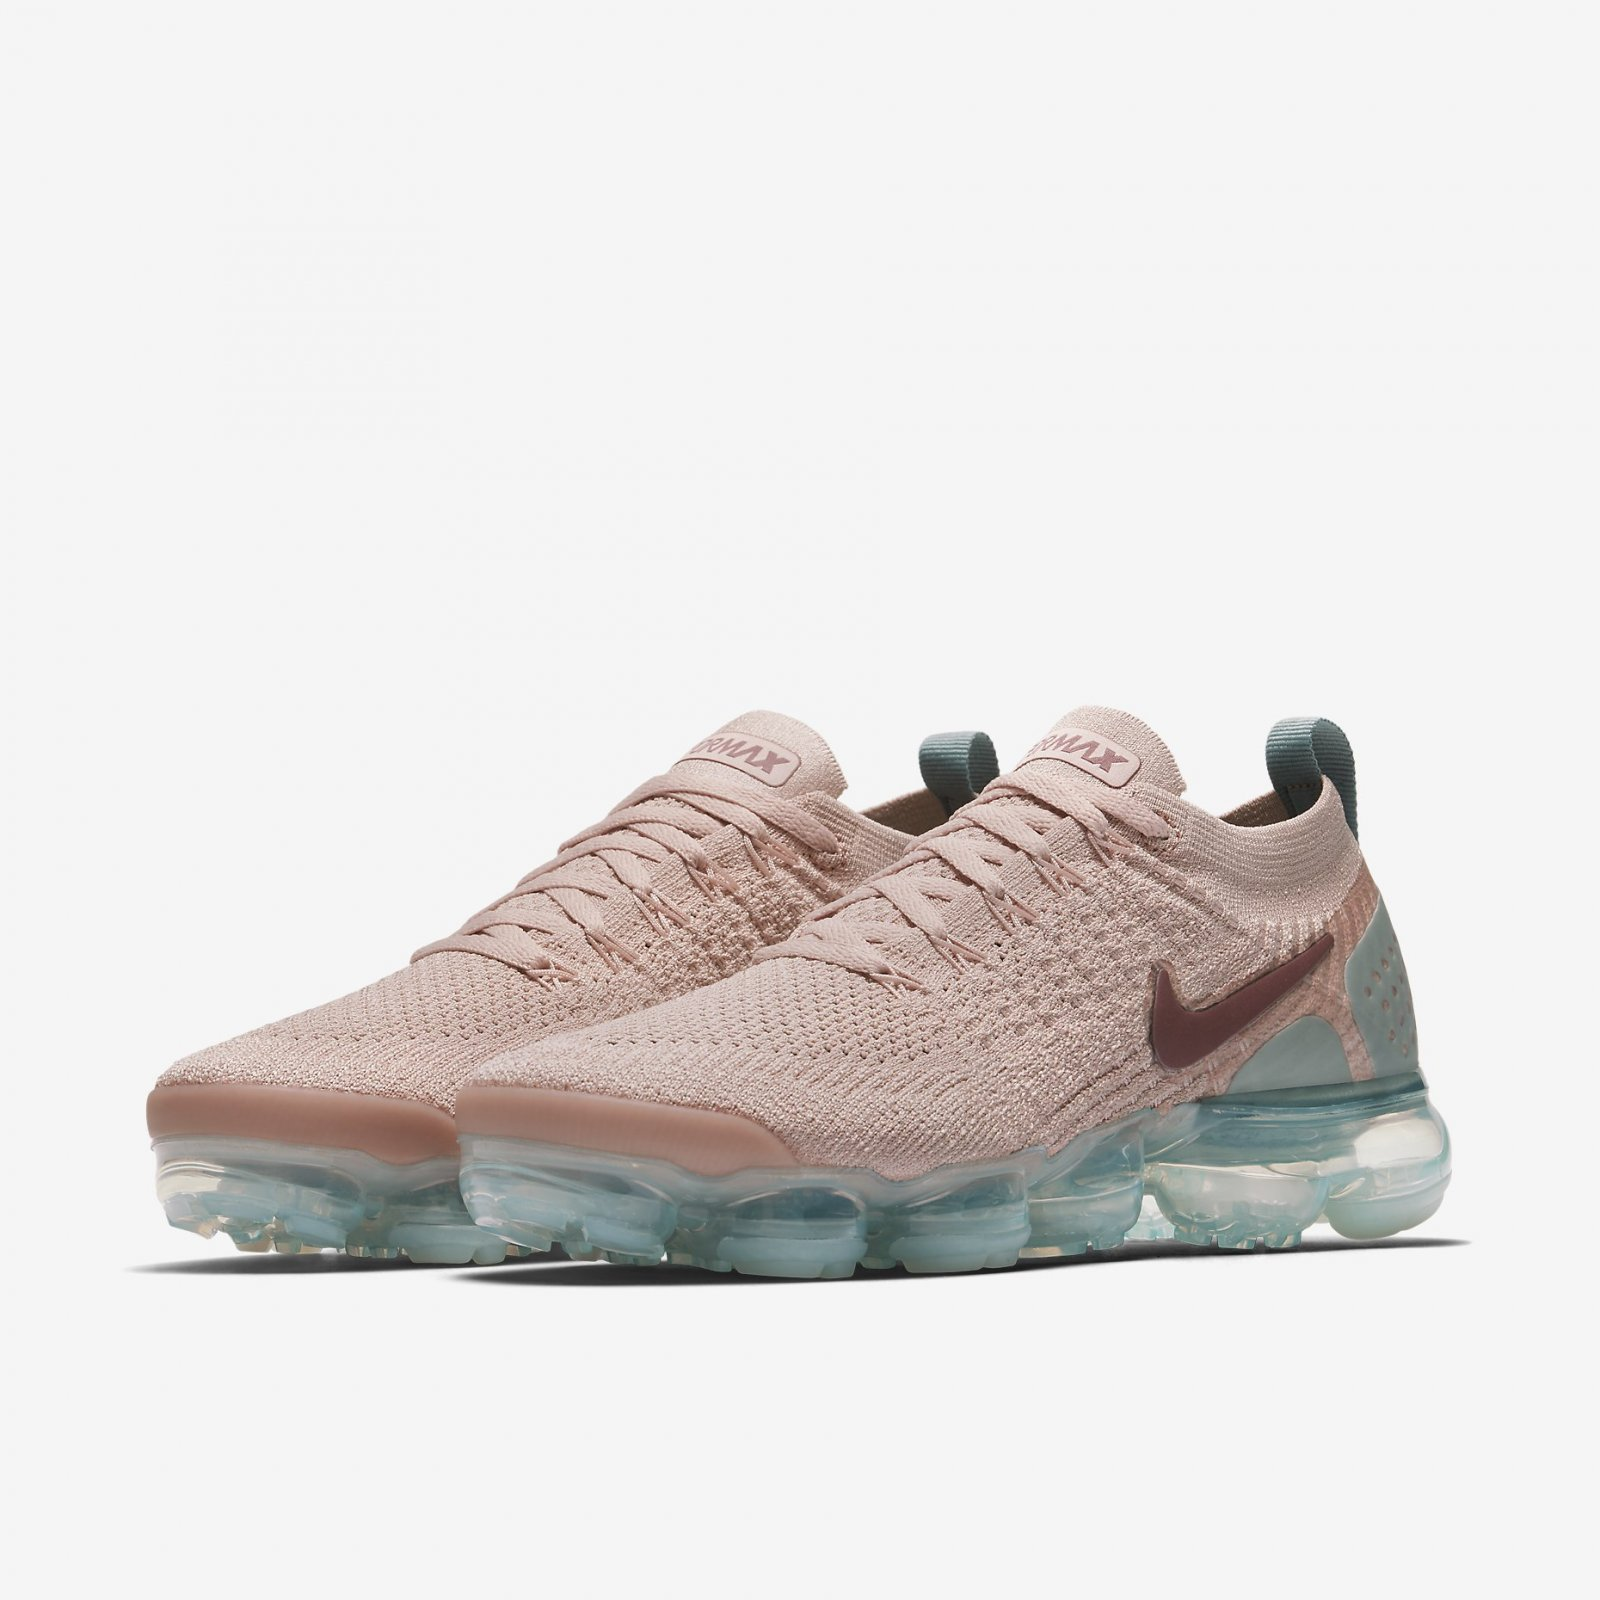 5cf48cac4e24b Nike Women s Air VaporMax Flyknit 2 Particle Beige Mauve Running ...